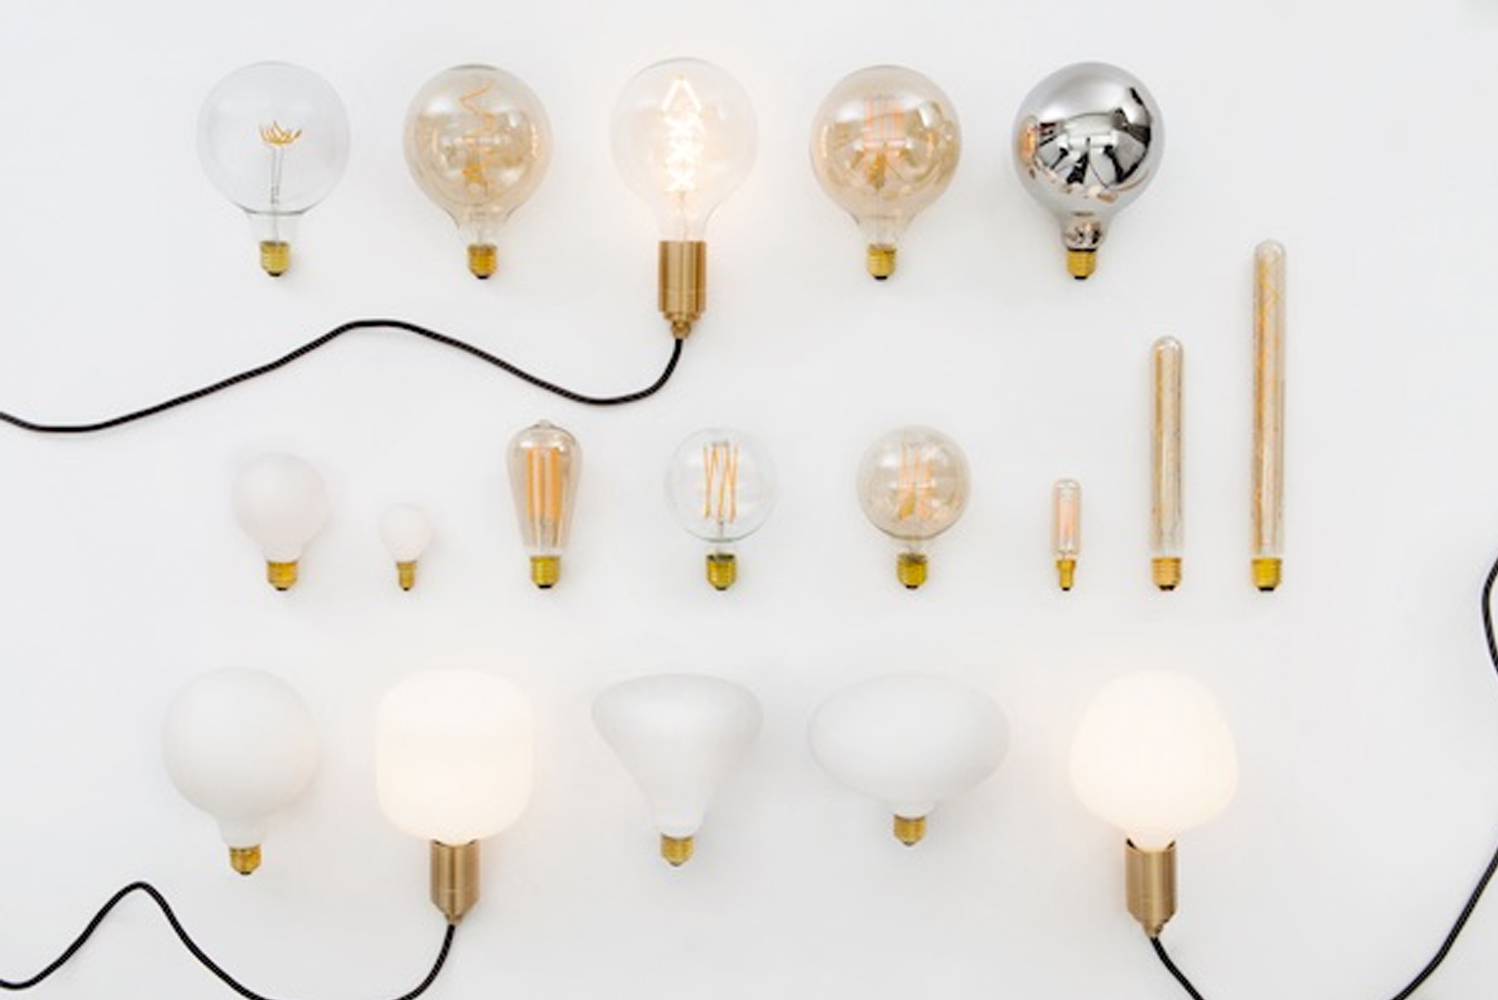 Tala, known for making LED bulbs with LED filament structures, introduced the Voronoi collection.